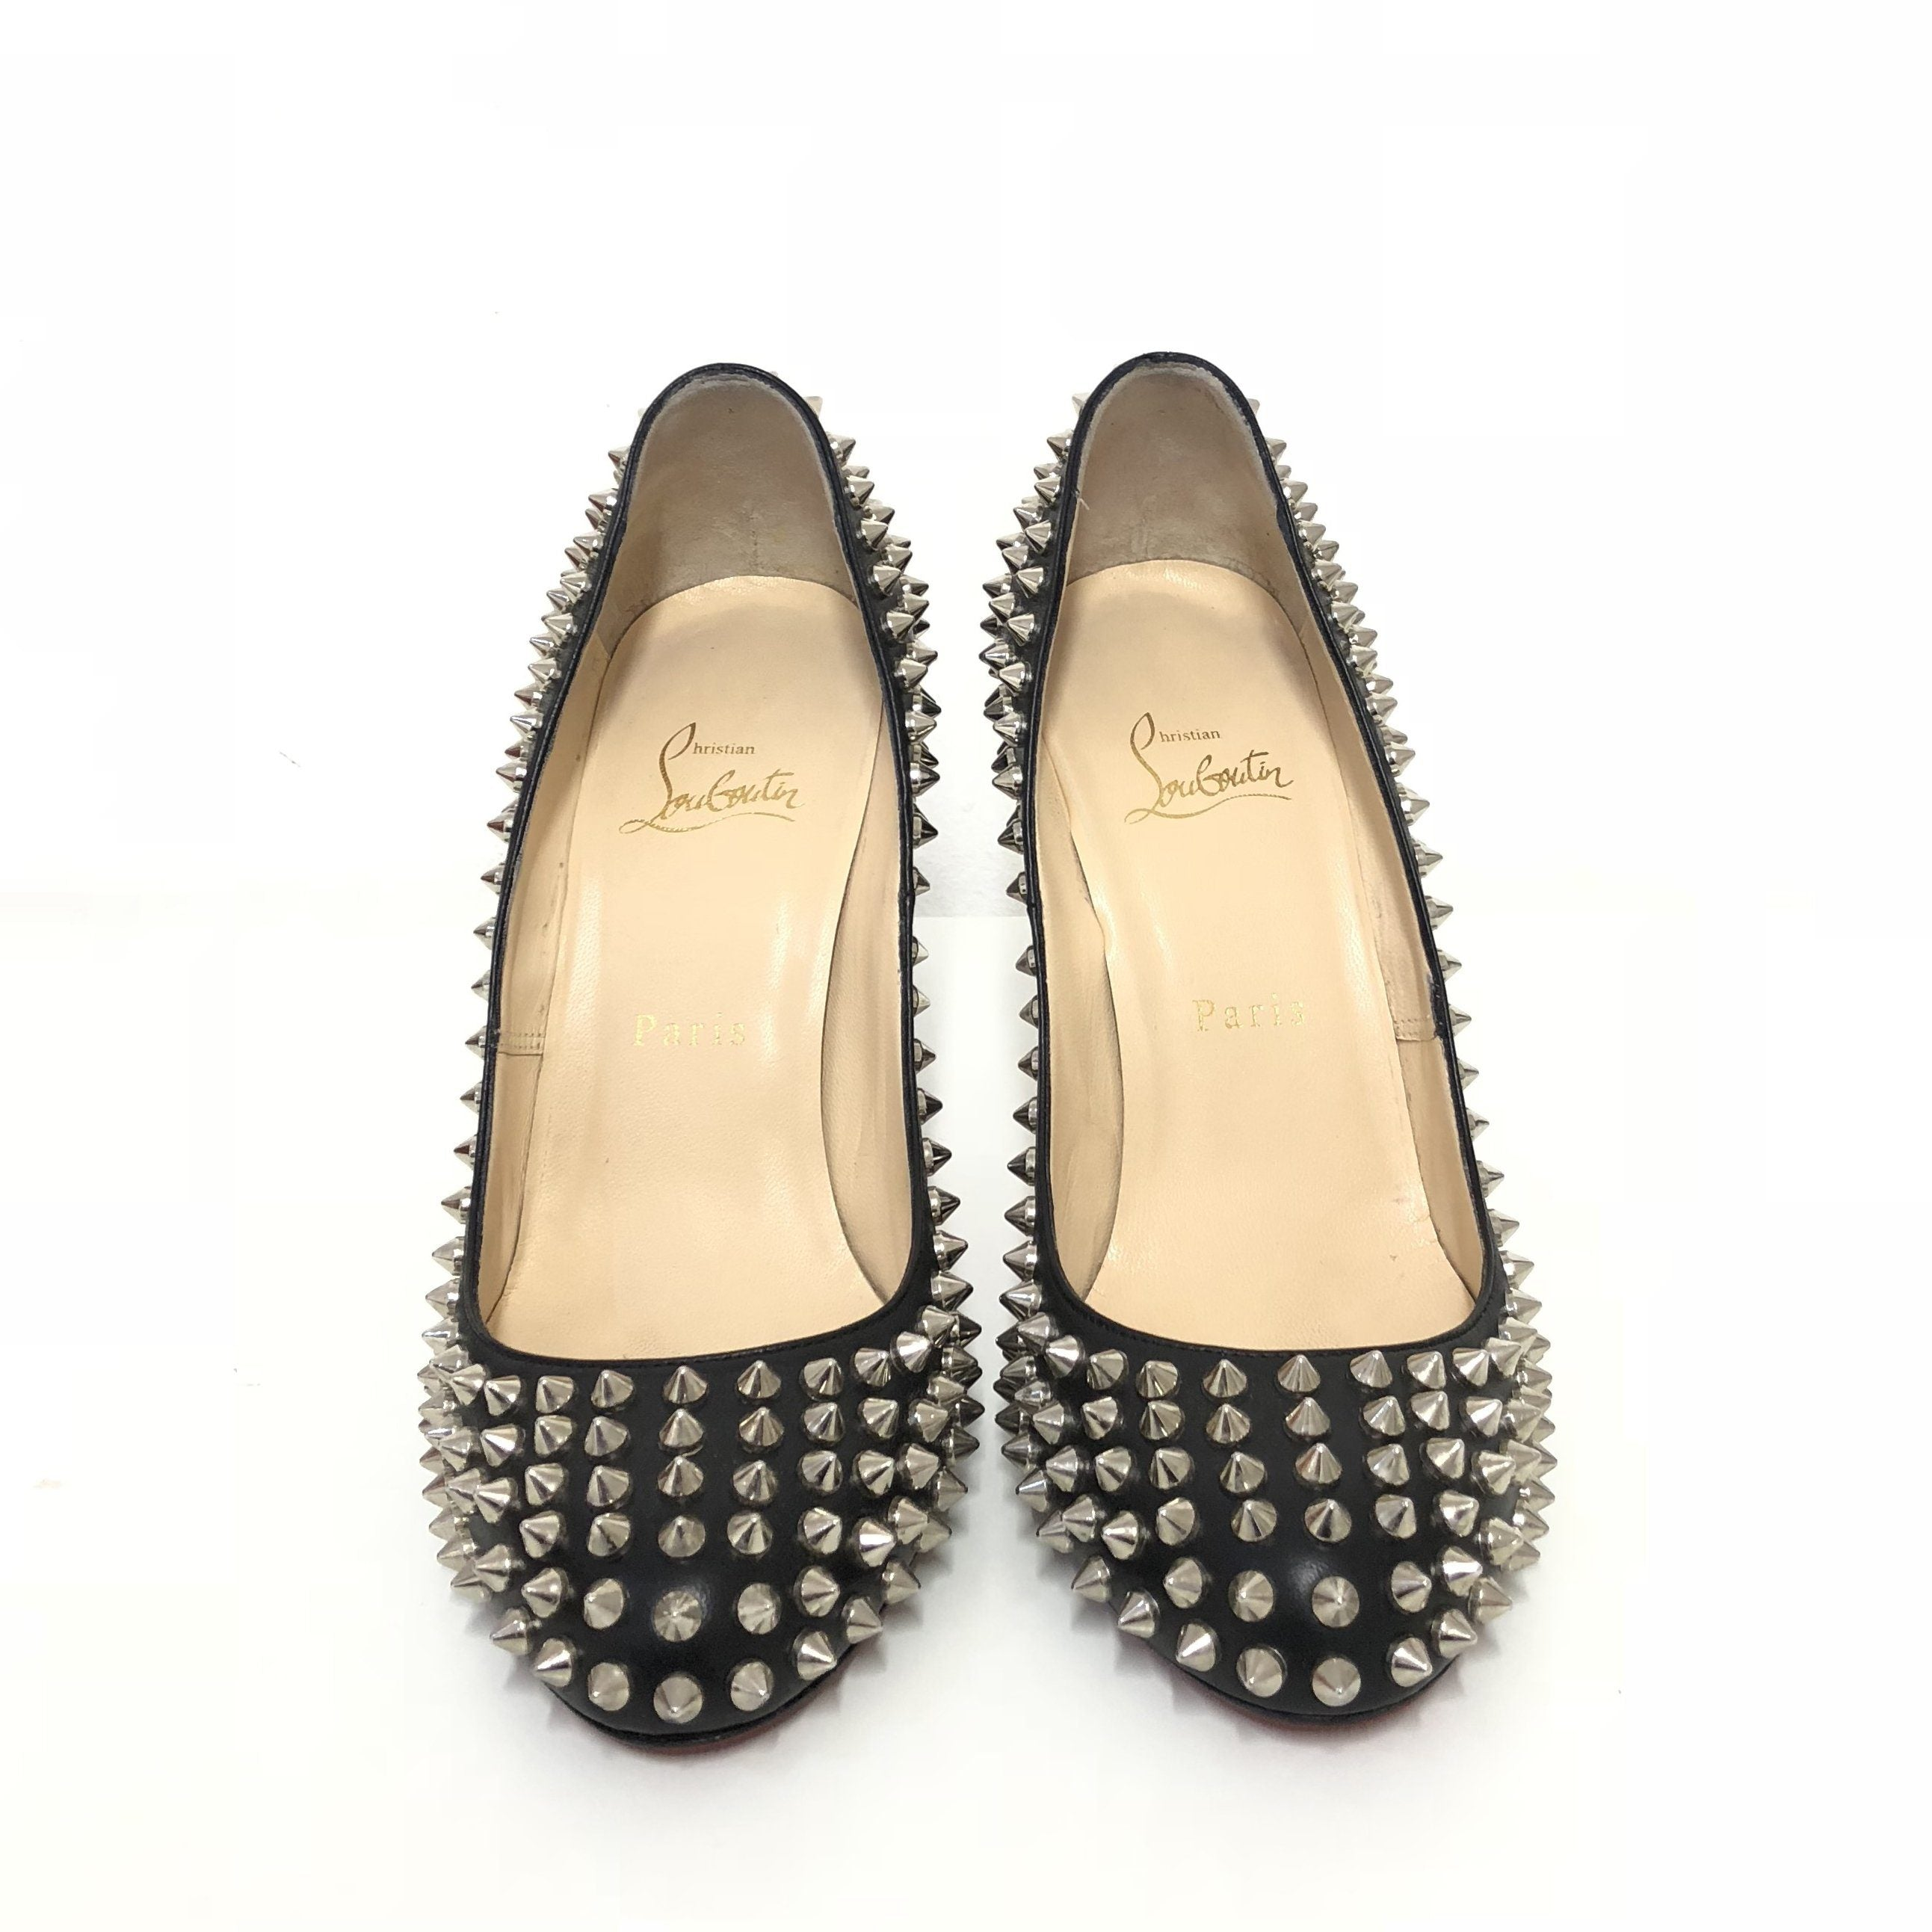 Christian Louboutin Fifi Black Spike Pumps